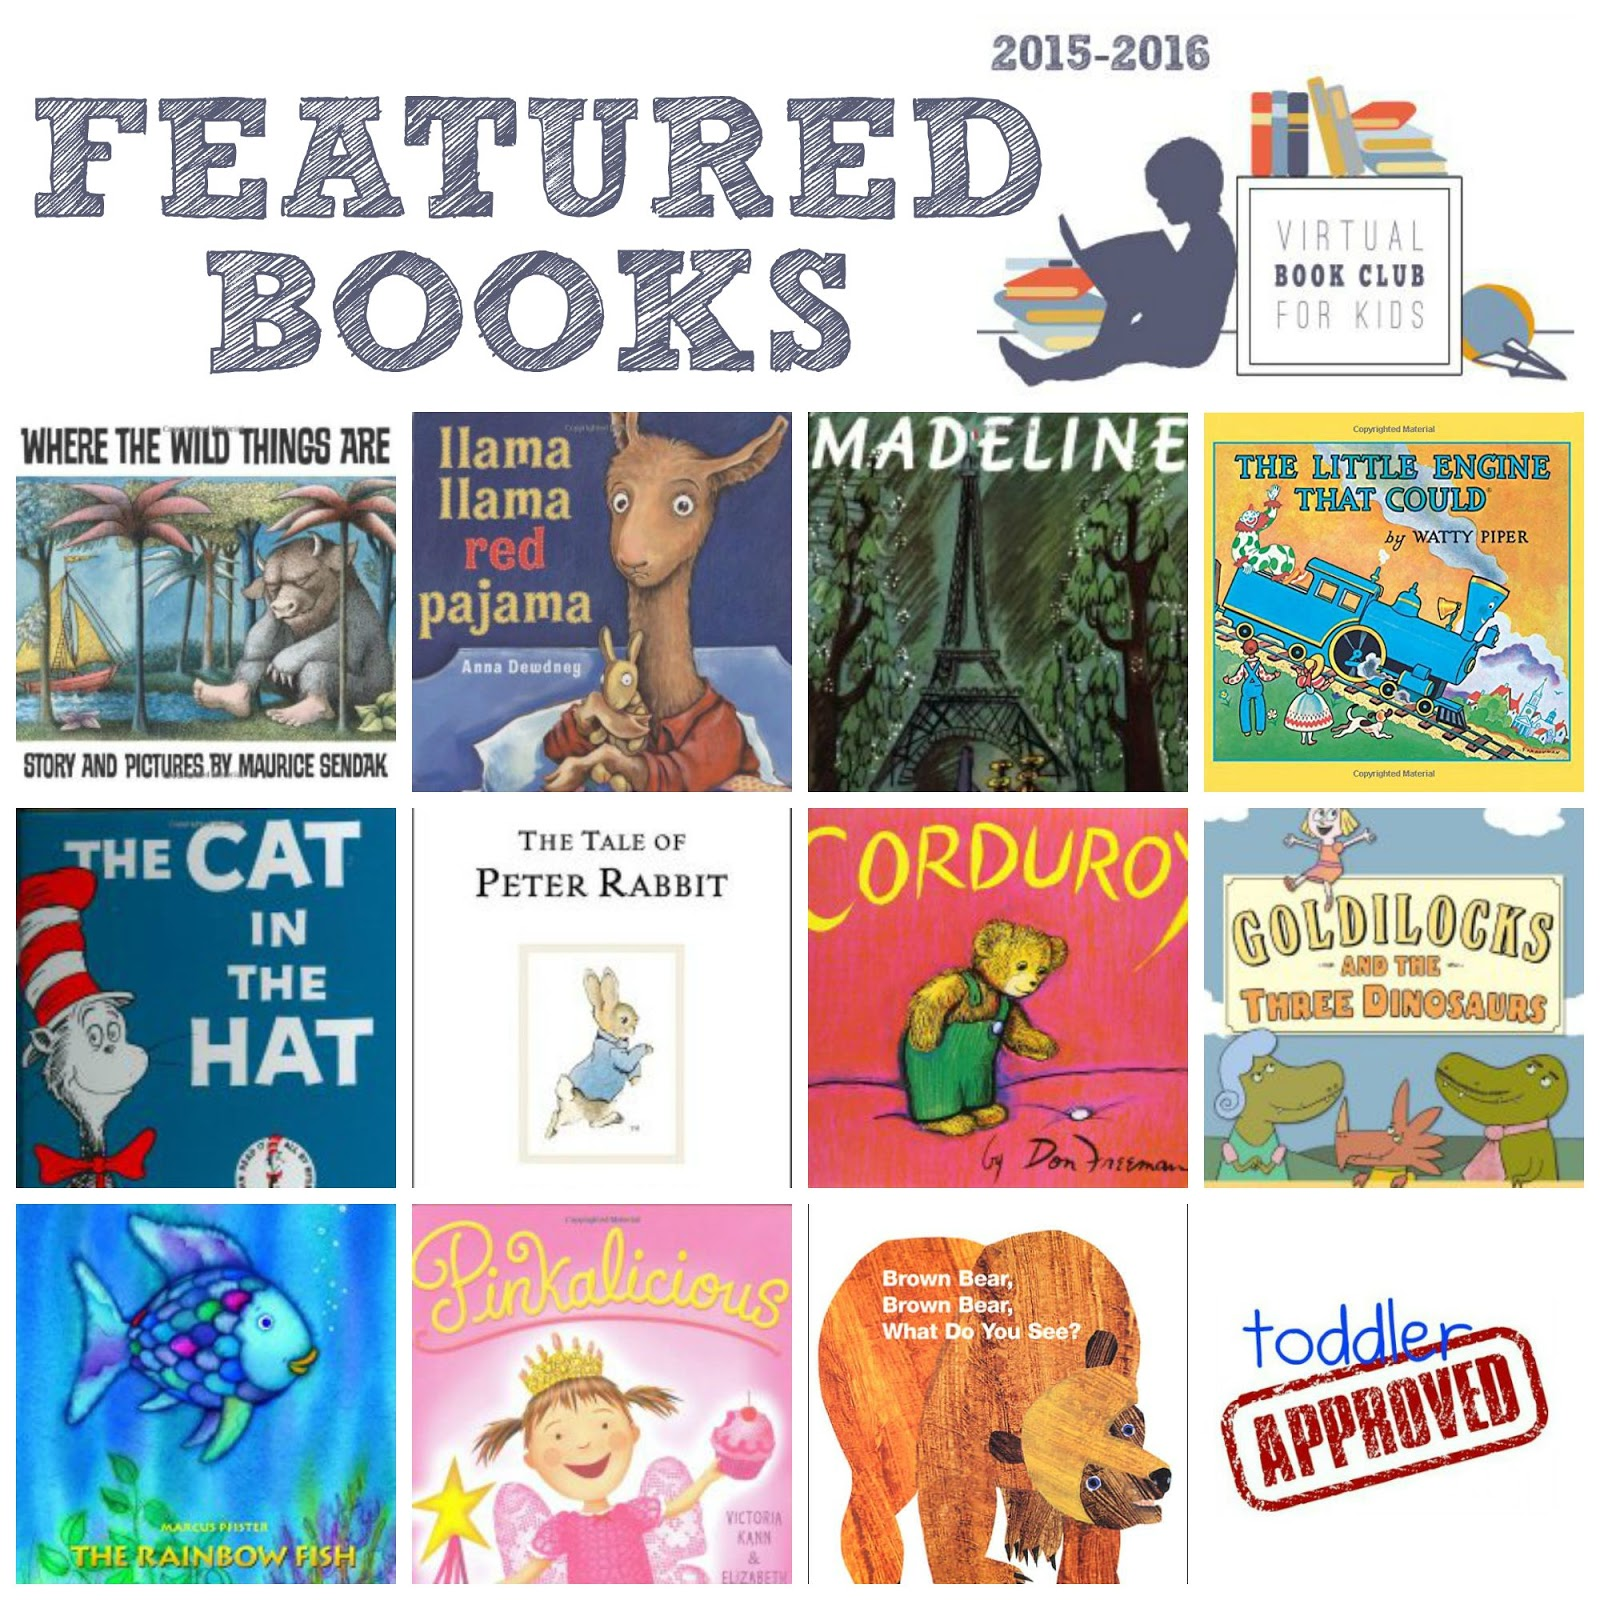 Toddler Approved!: Come Join Virtual Book Club for Kids 2015-2016!